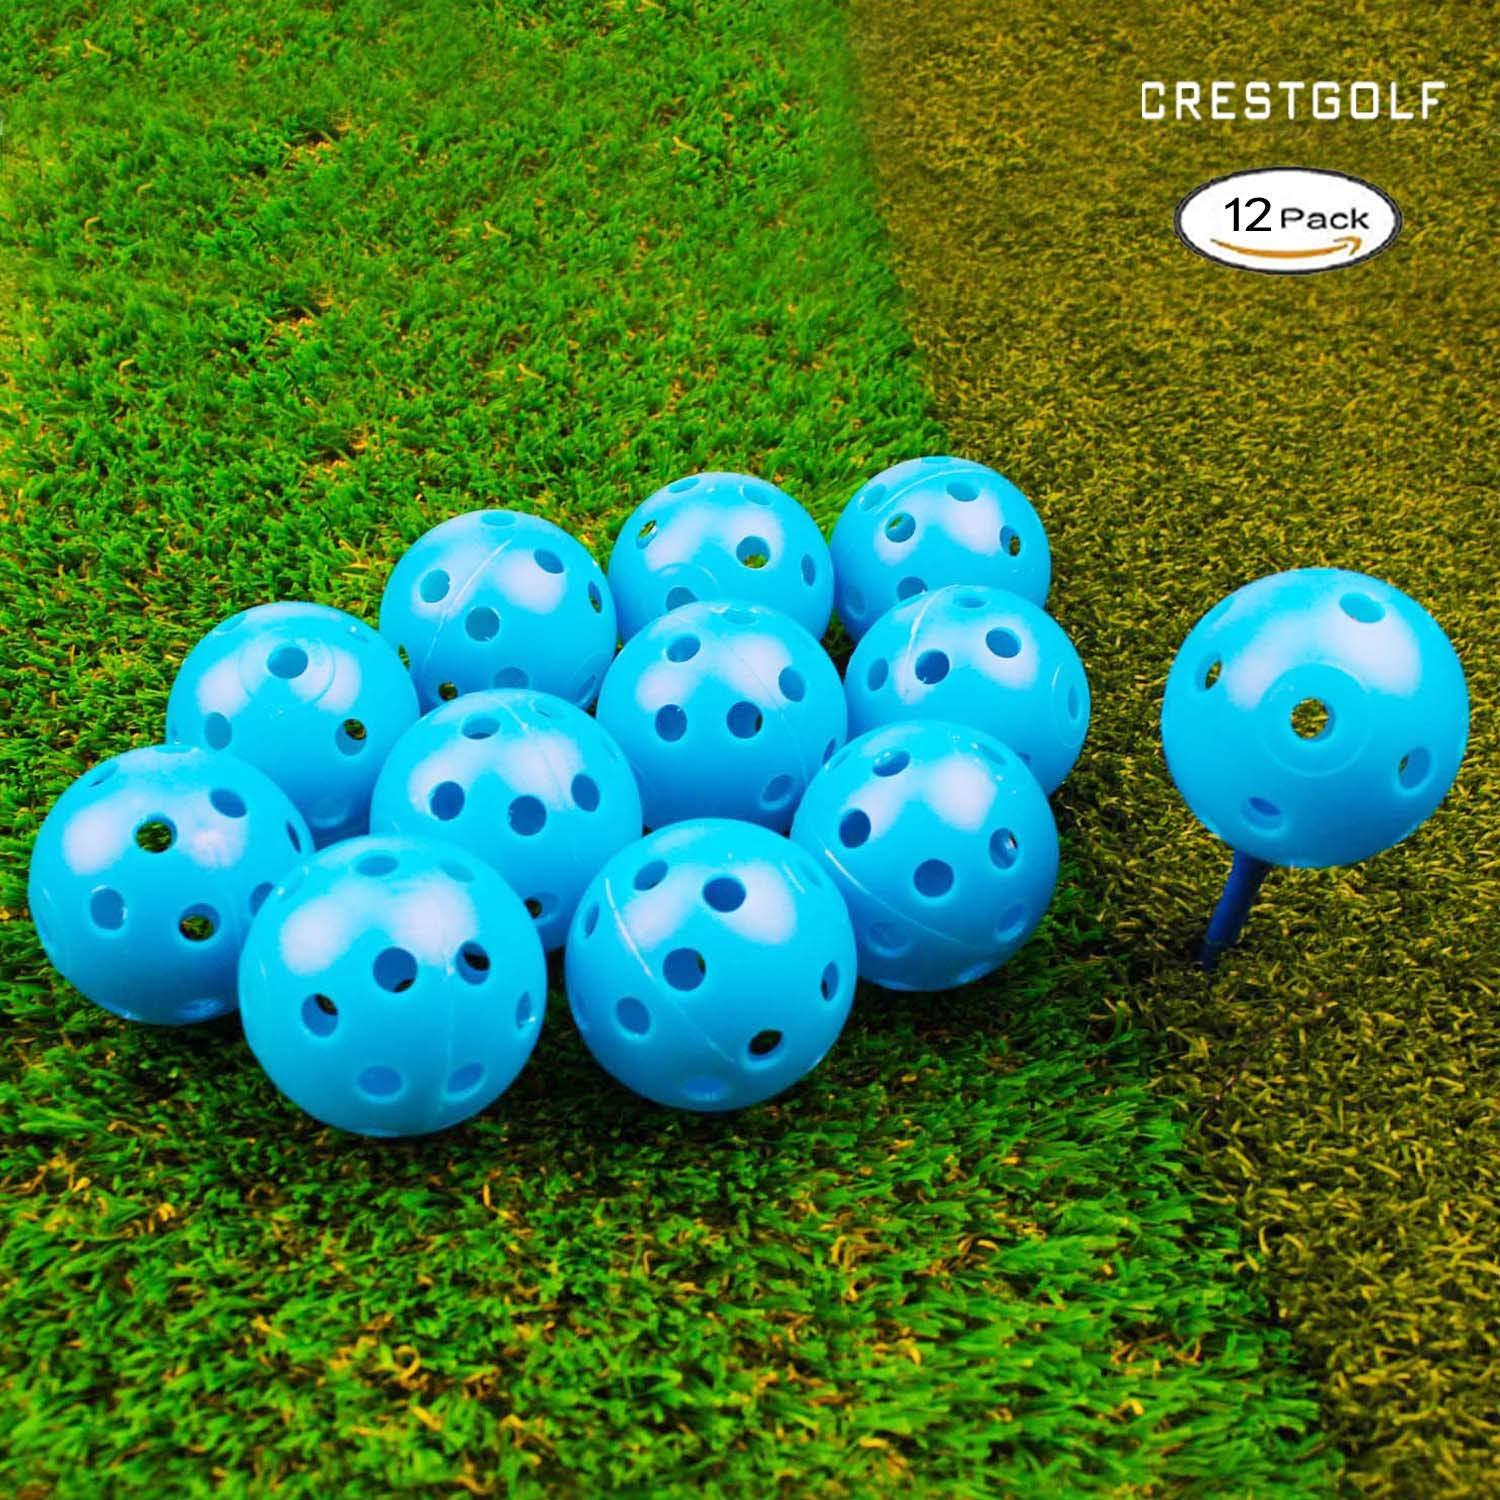 Crestgolf 40mm Plastic Airflow Golf Balls Pack of 12 (blue ) by Crestgolf